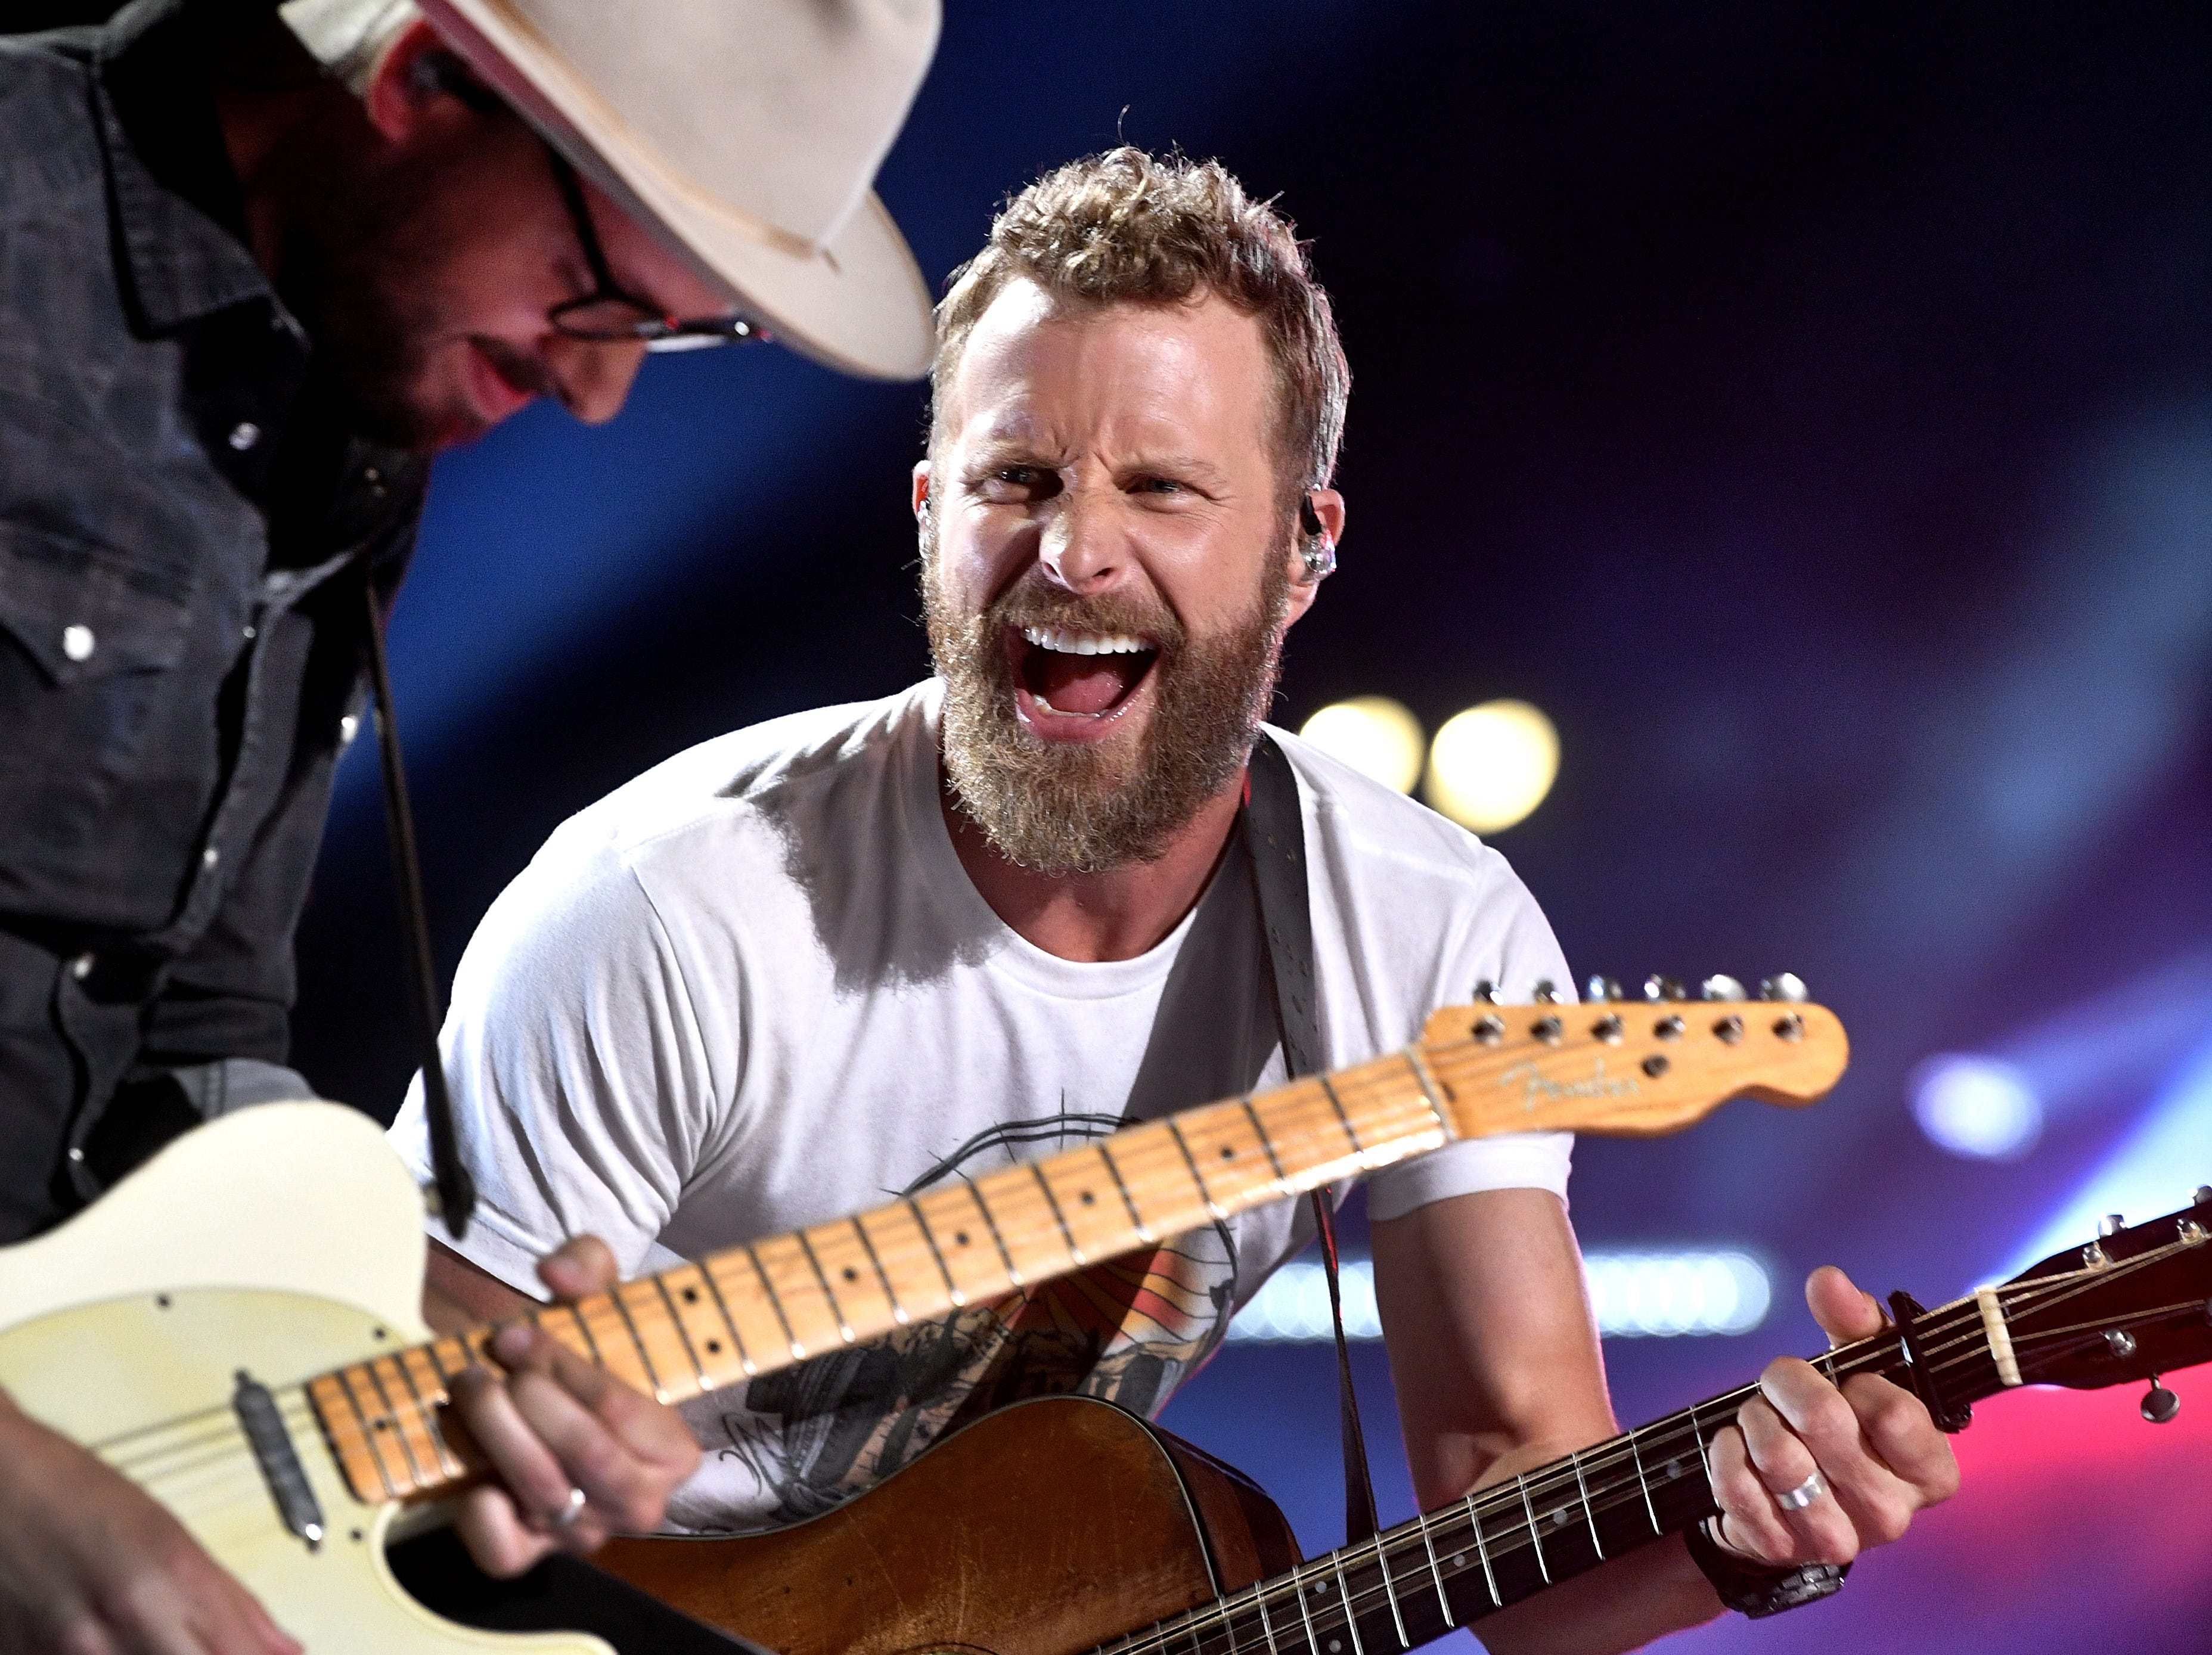 Dierks Bentley performs at the 2018 CMA Music Fest Sunday, June 10, 2018, at Nissan Stadium in Nashville, Tenn.